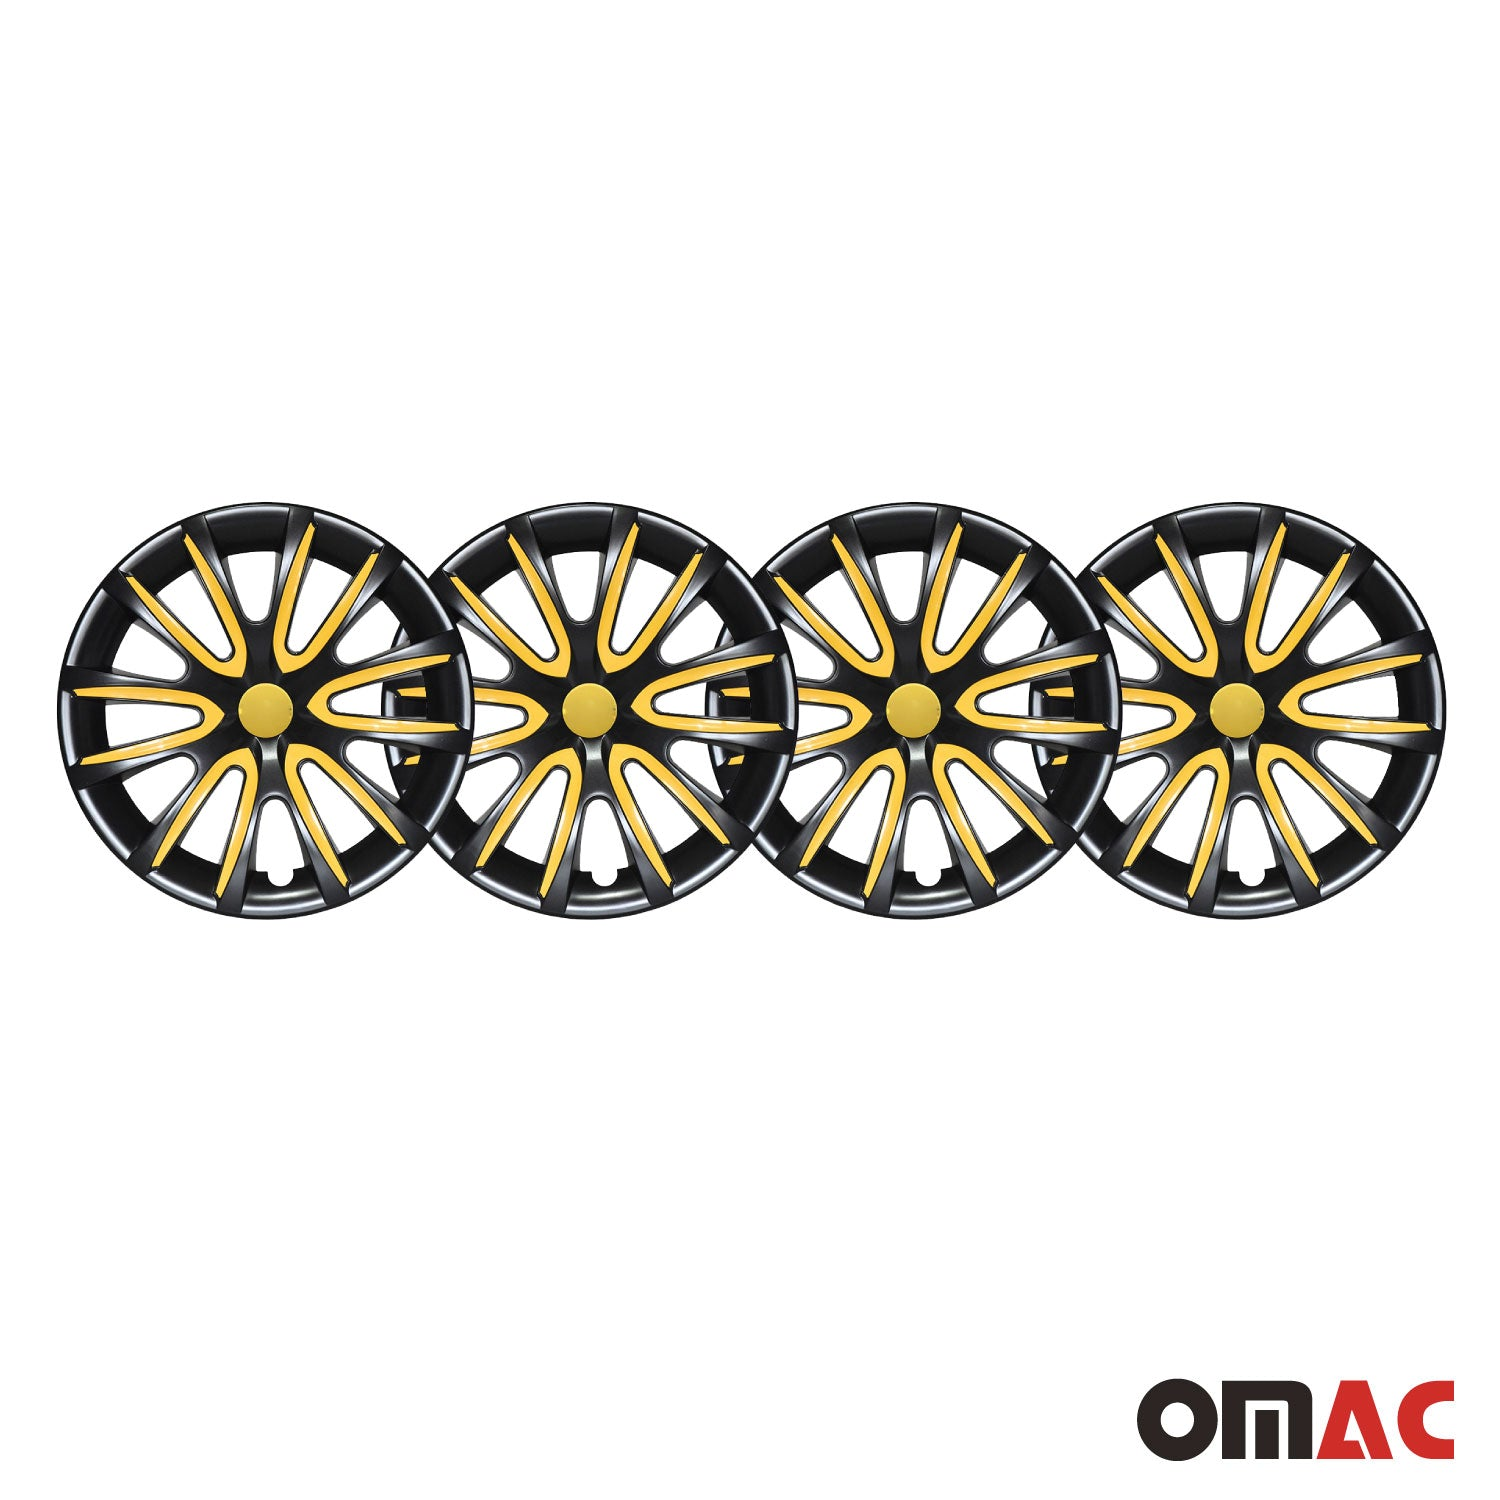 "14"" Inch Hubcaps Wheel Rim Cover Glossy Black with Yellow Insert 4pcs Set"